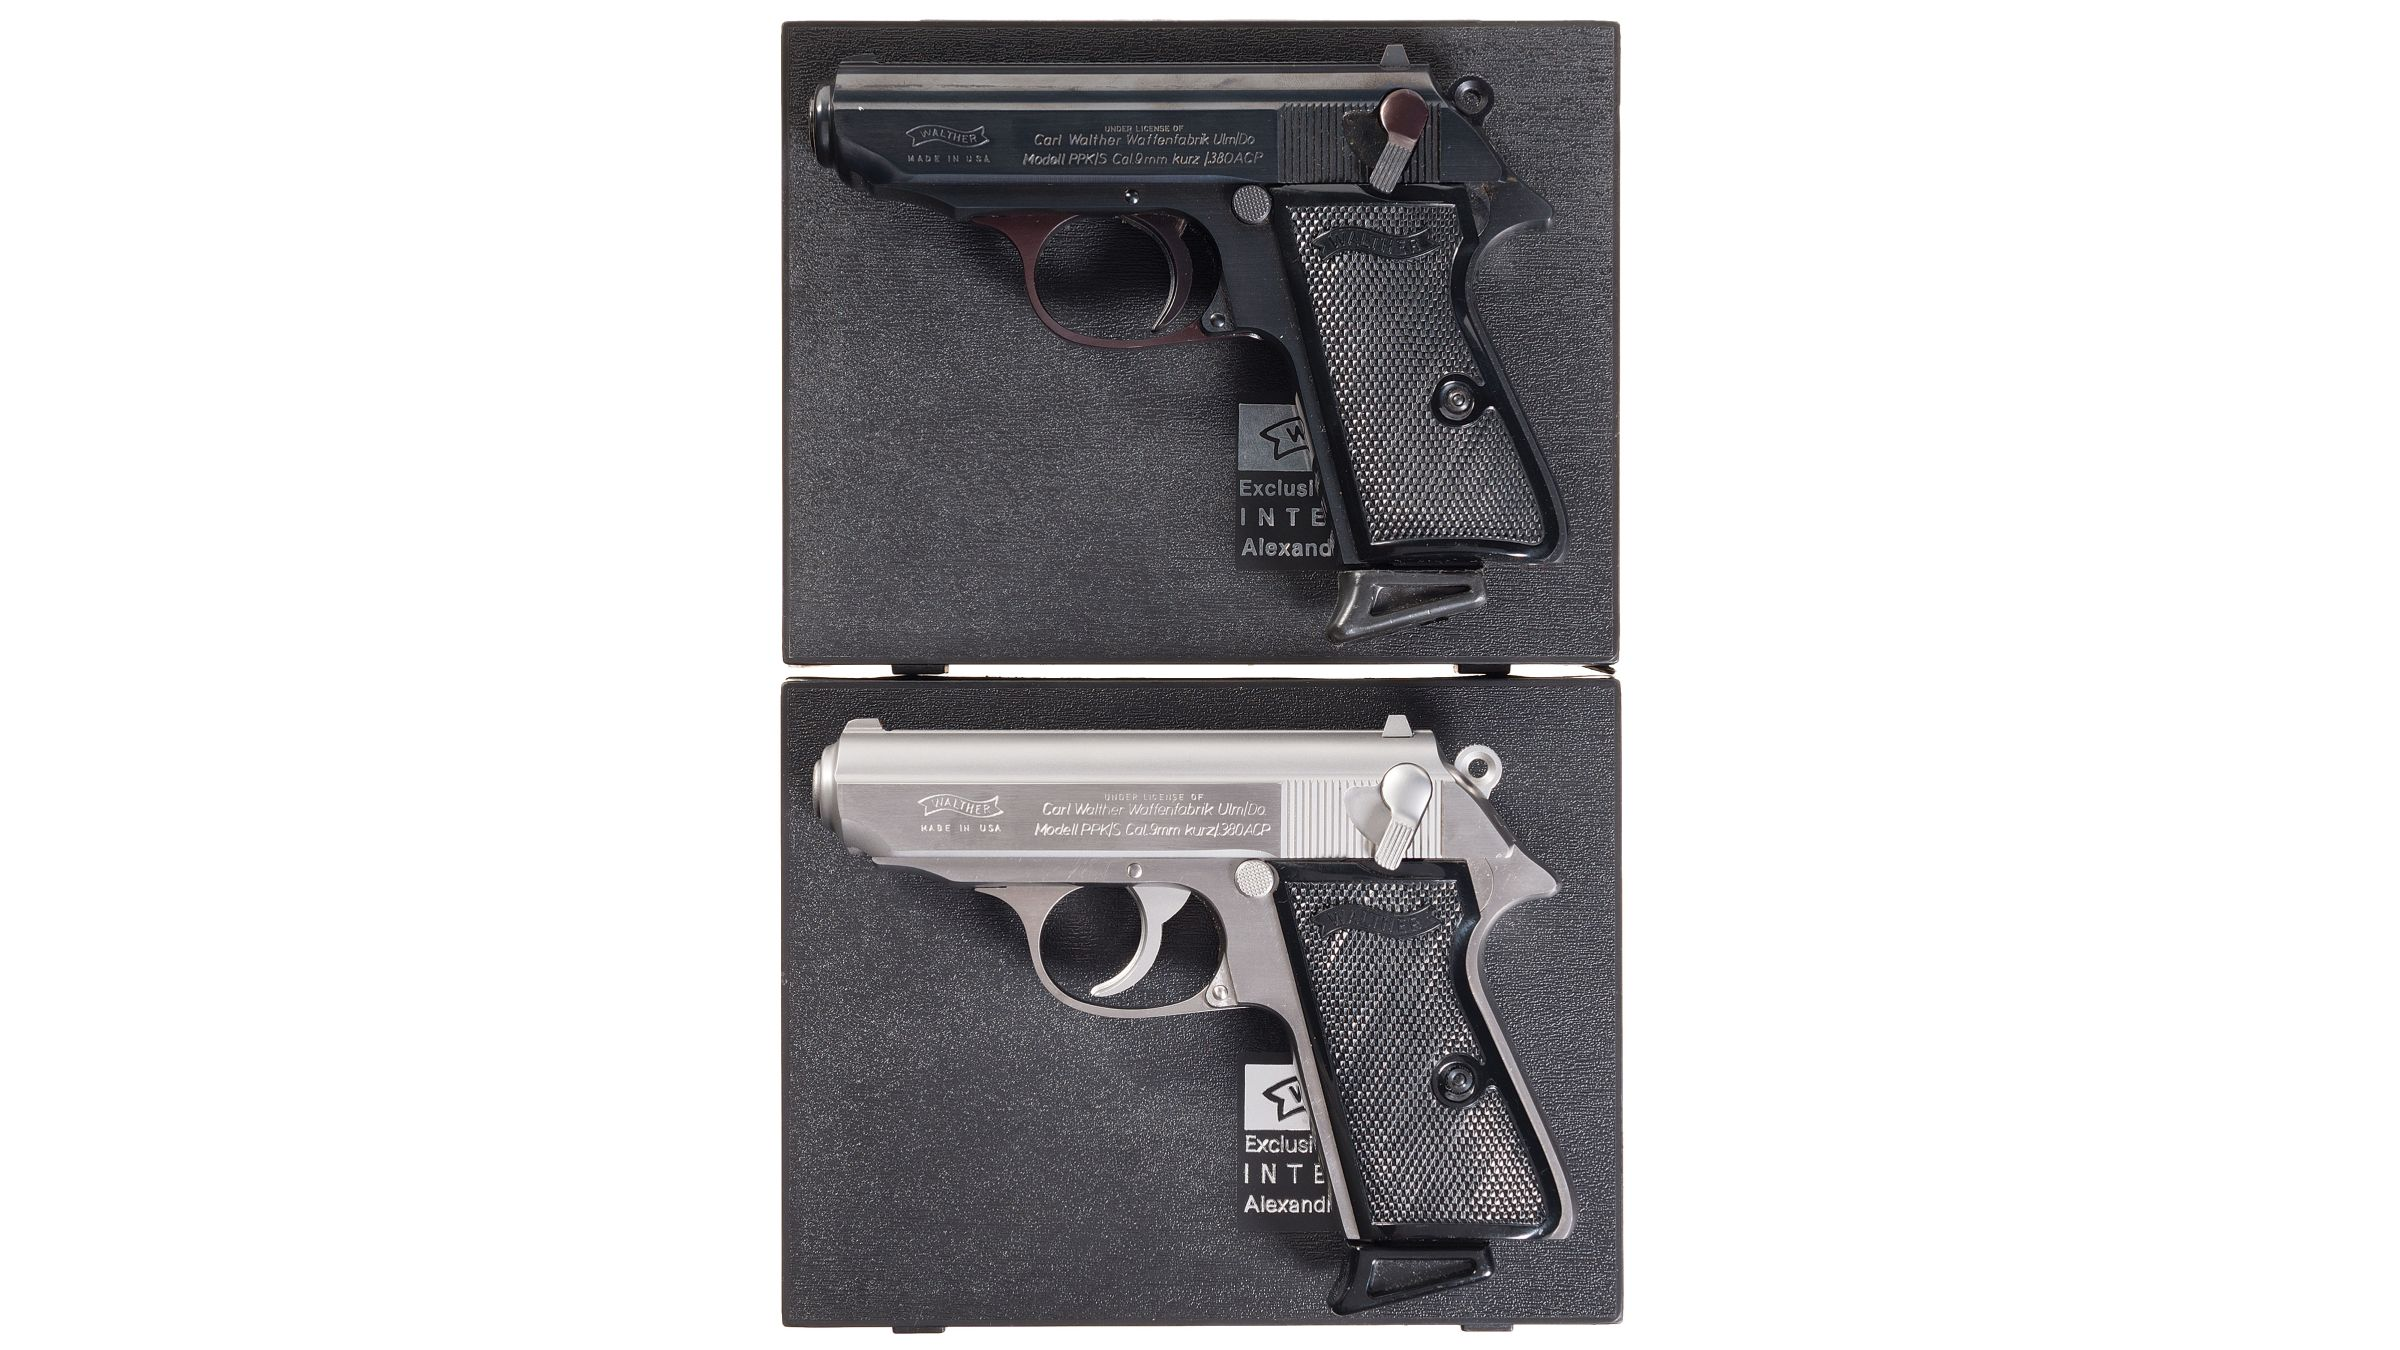 Two Cased Walther PPK/S Pistols with Matching Serial Numbers